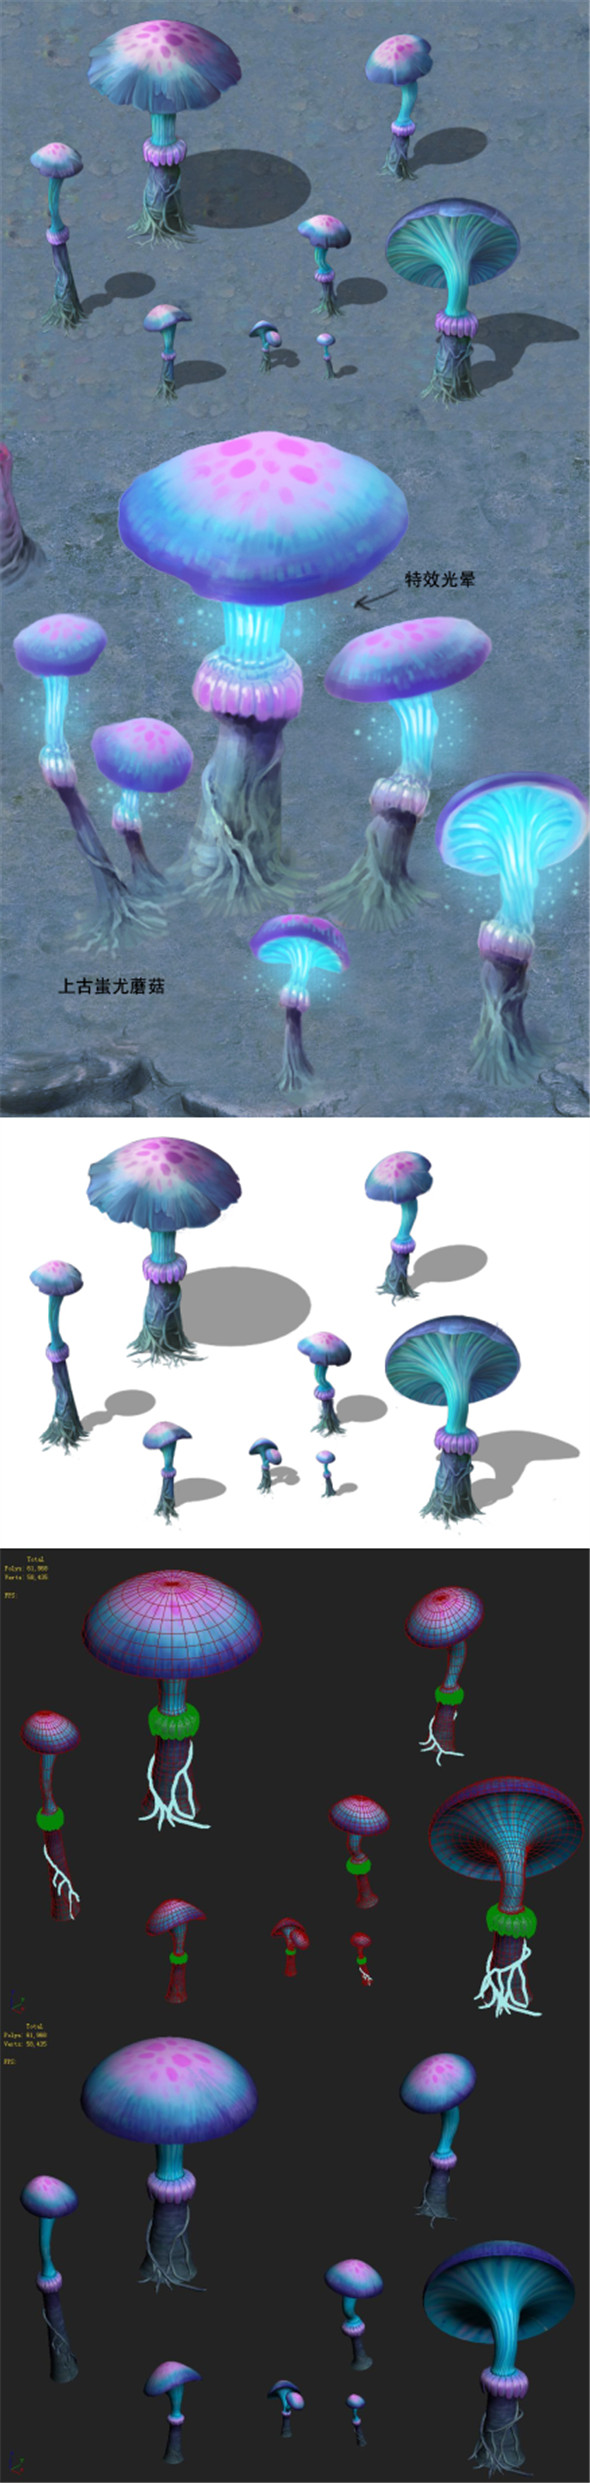 Cartoon Edition - Ancient Chi You mushrooms - 3DOcean Item for Sale